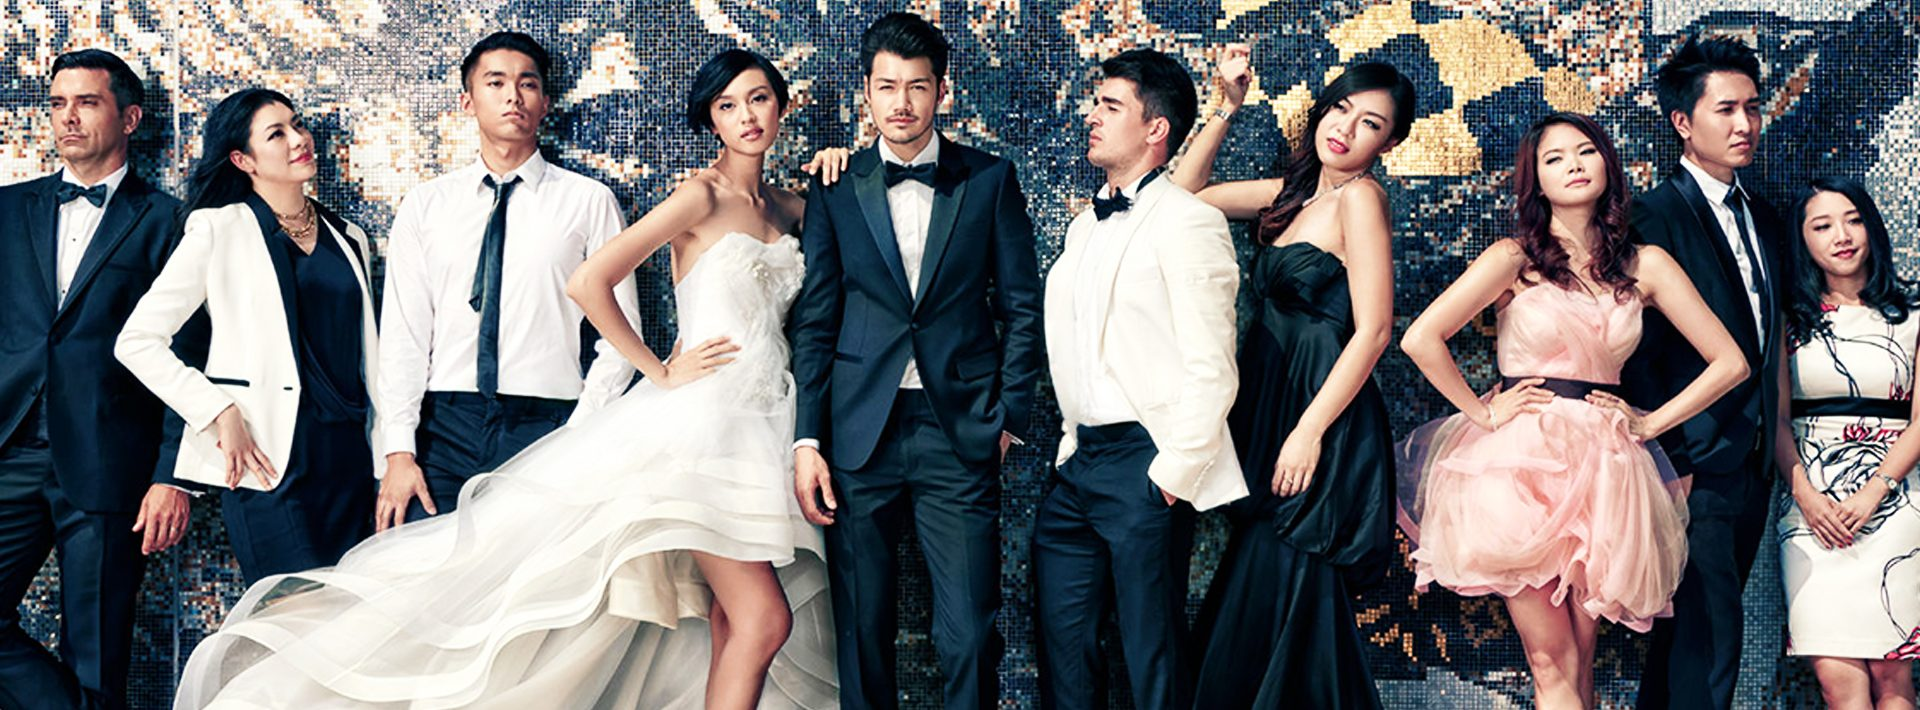 0fee94df0 11 Ways To Have An A-List Wedding in Hong Kong - W Hotels / The Angle -  Life with a W Slant